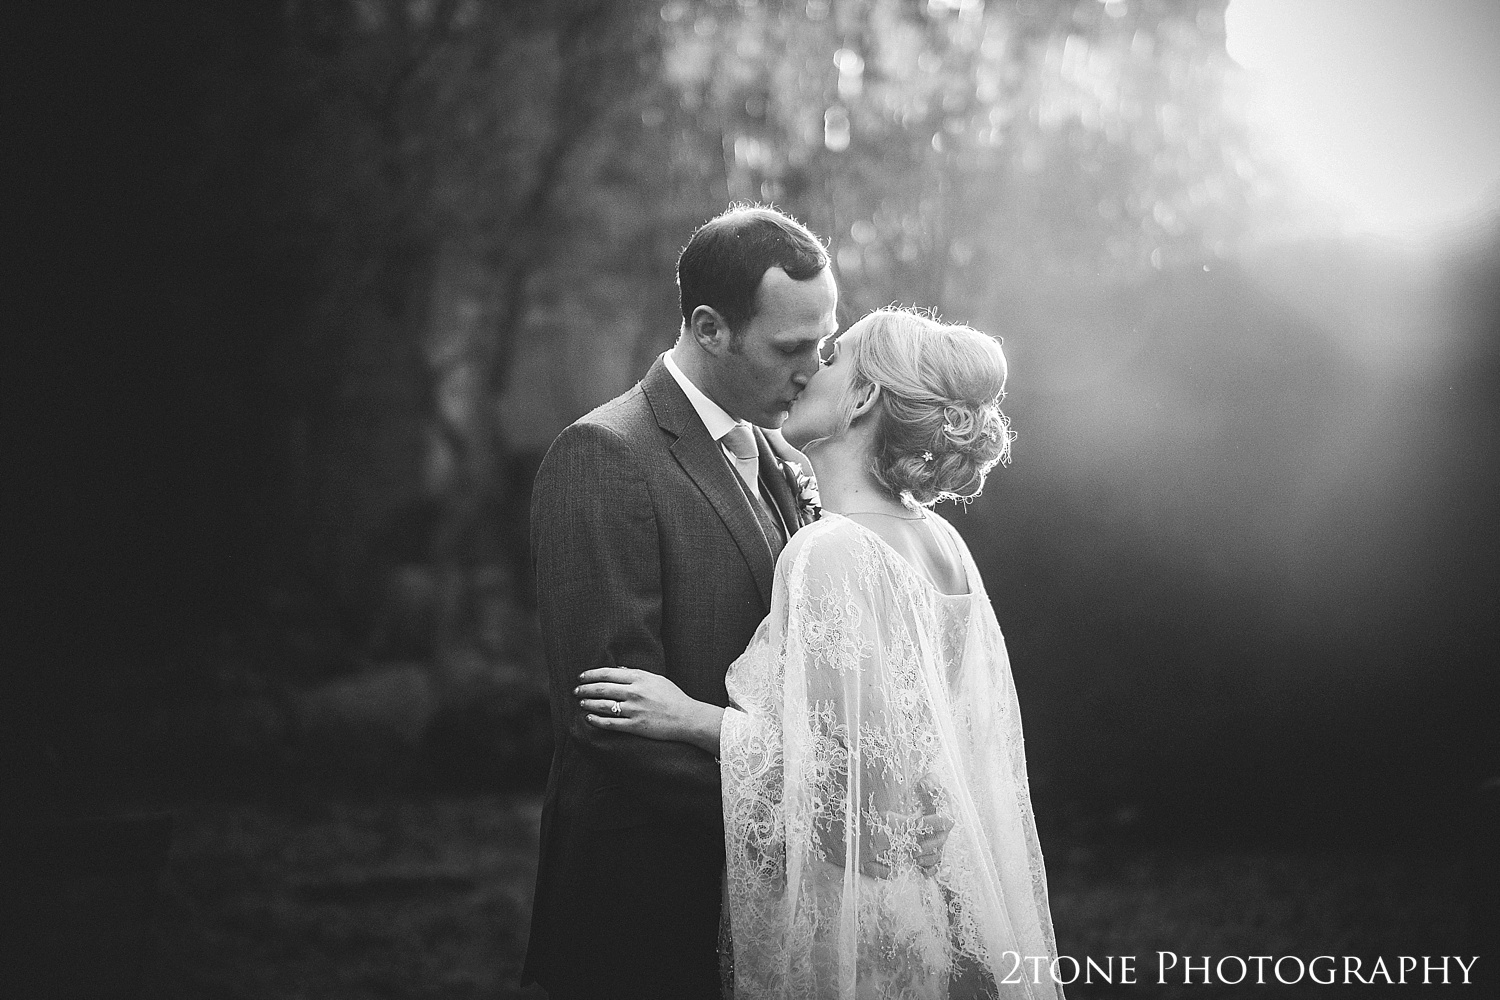 Winter wedding photograph at Jesmond Dene House